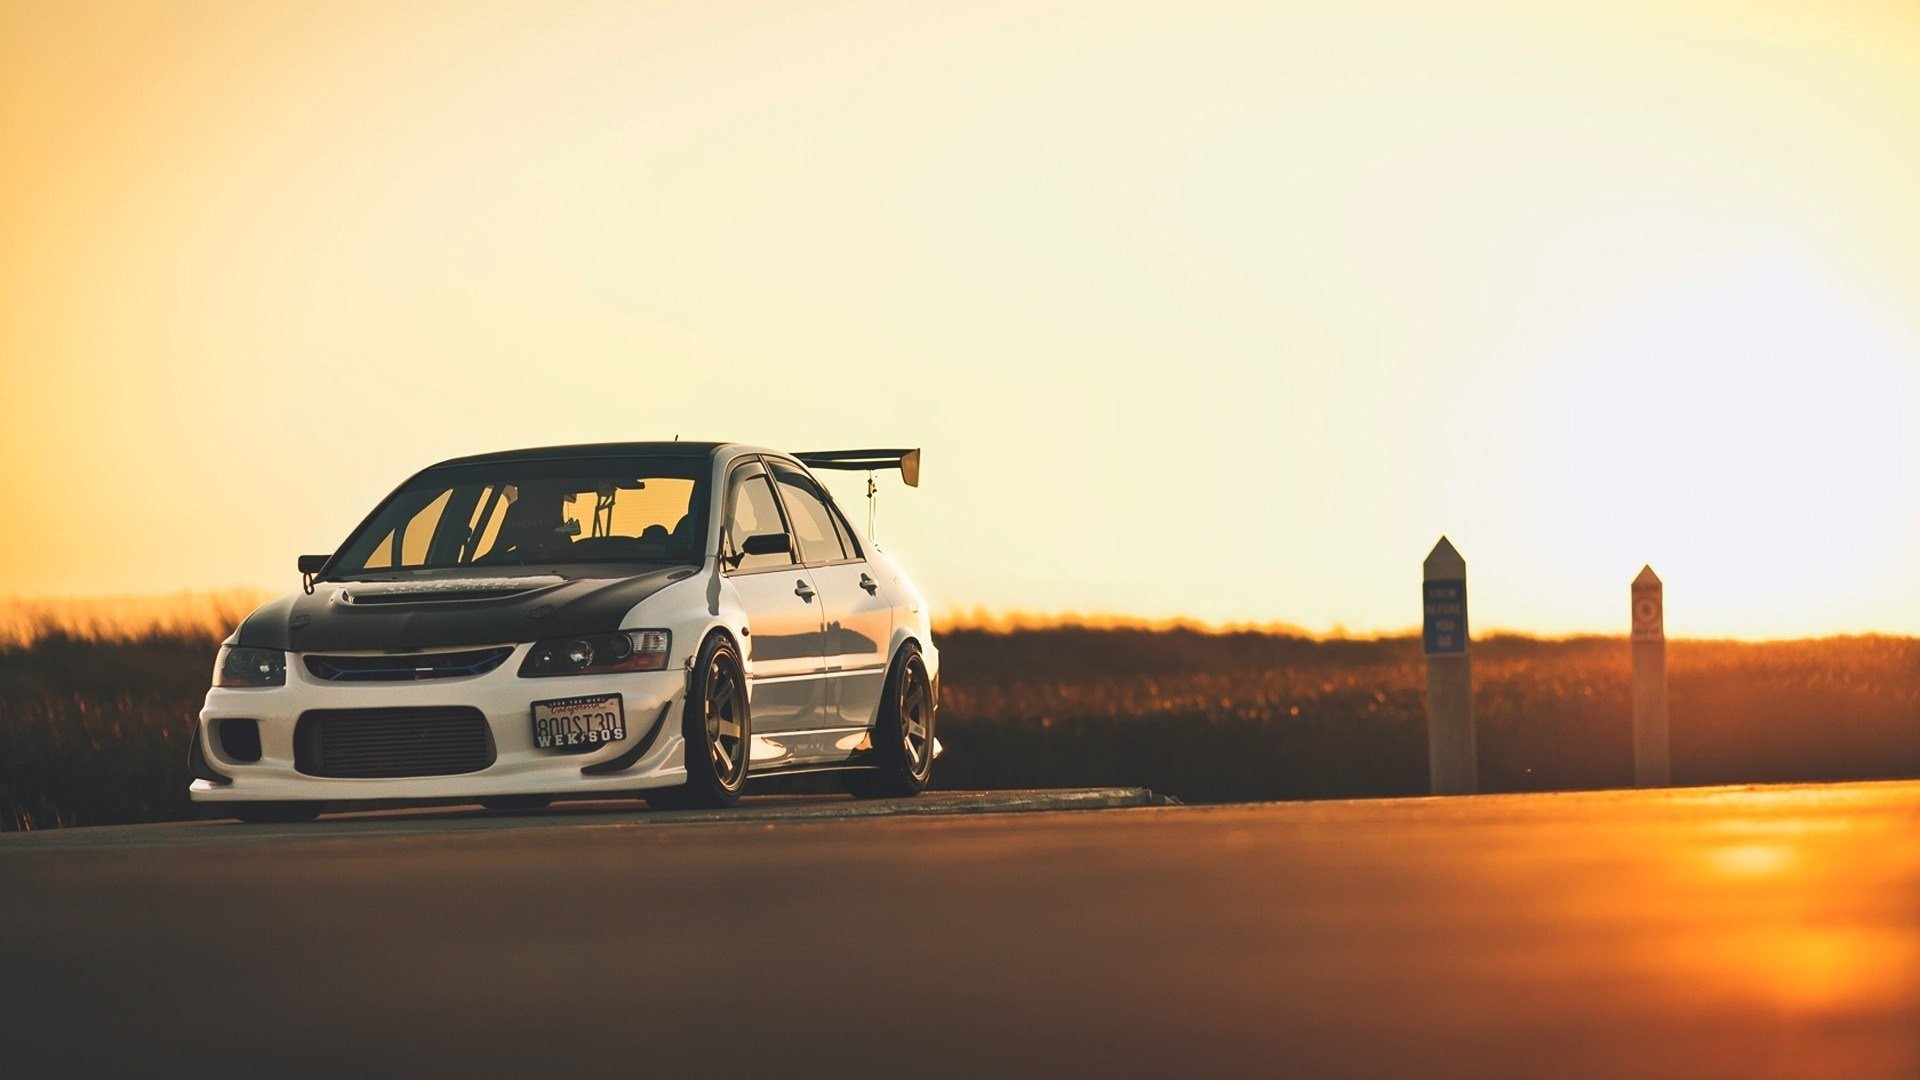 Evo 9 Wallpaper HD 72 images 1920x1080